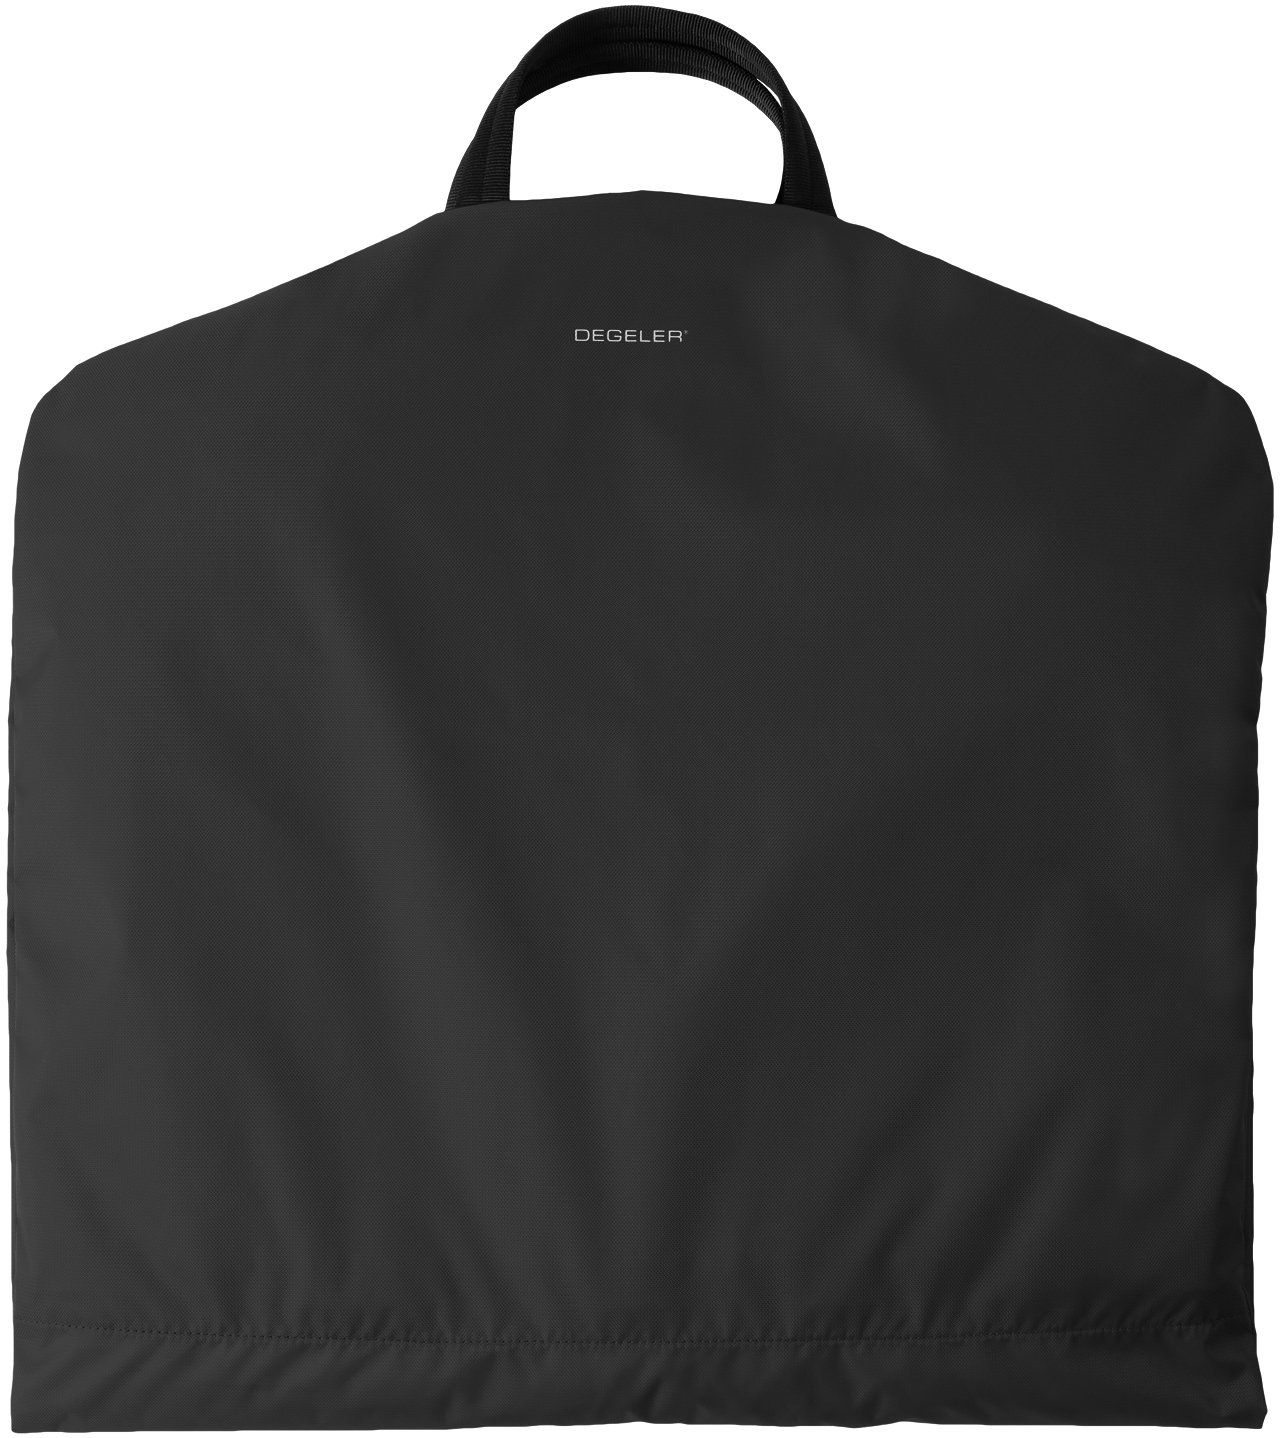 Travel Garment Bag with Titanium Hanger - Crafted from Ultralight, Water-Resistant High End Velocity Nylon Fabrics To Create An Effortless 6 Pocket Luggage Carrier (Black) by DEGELER